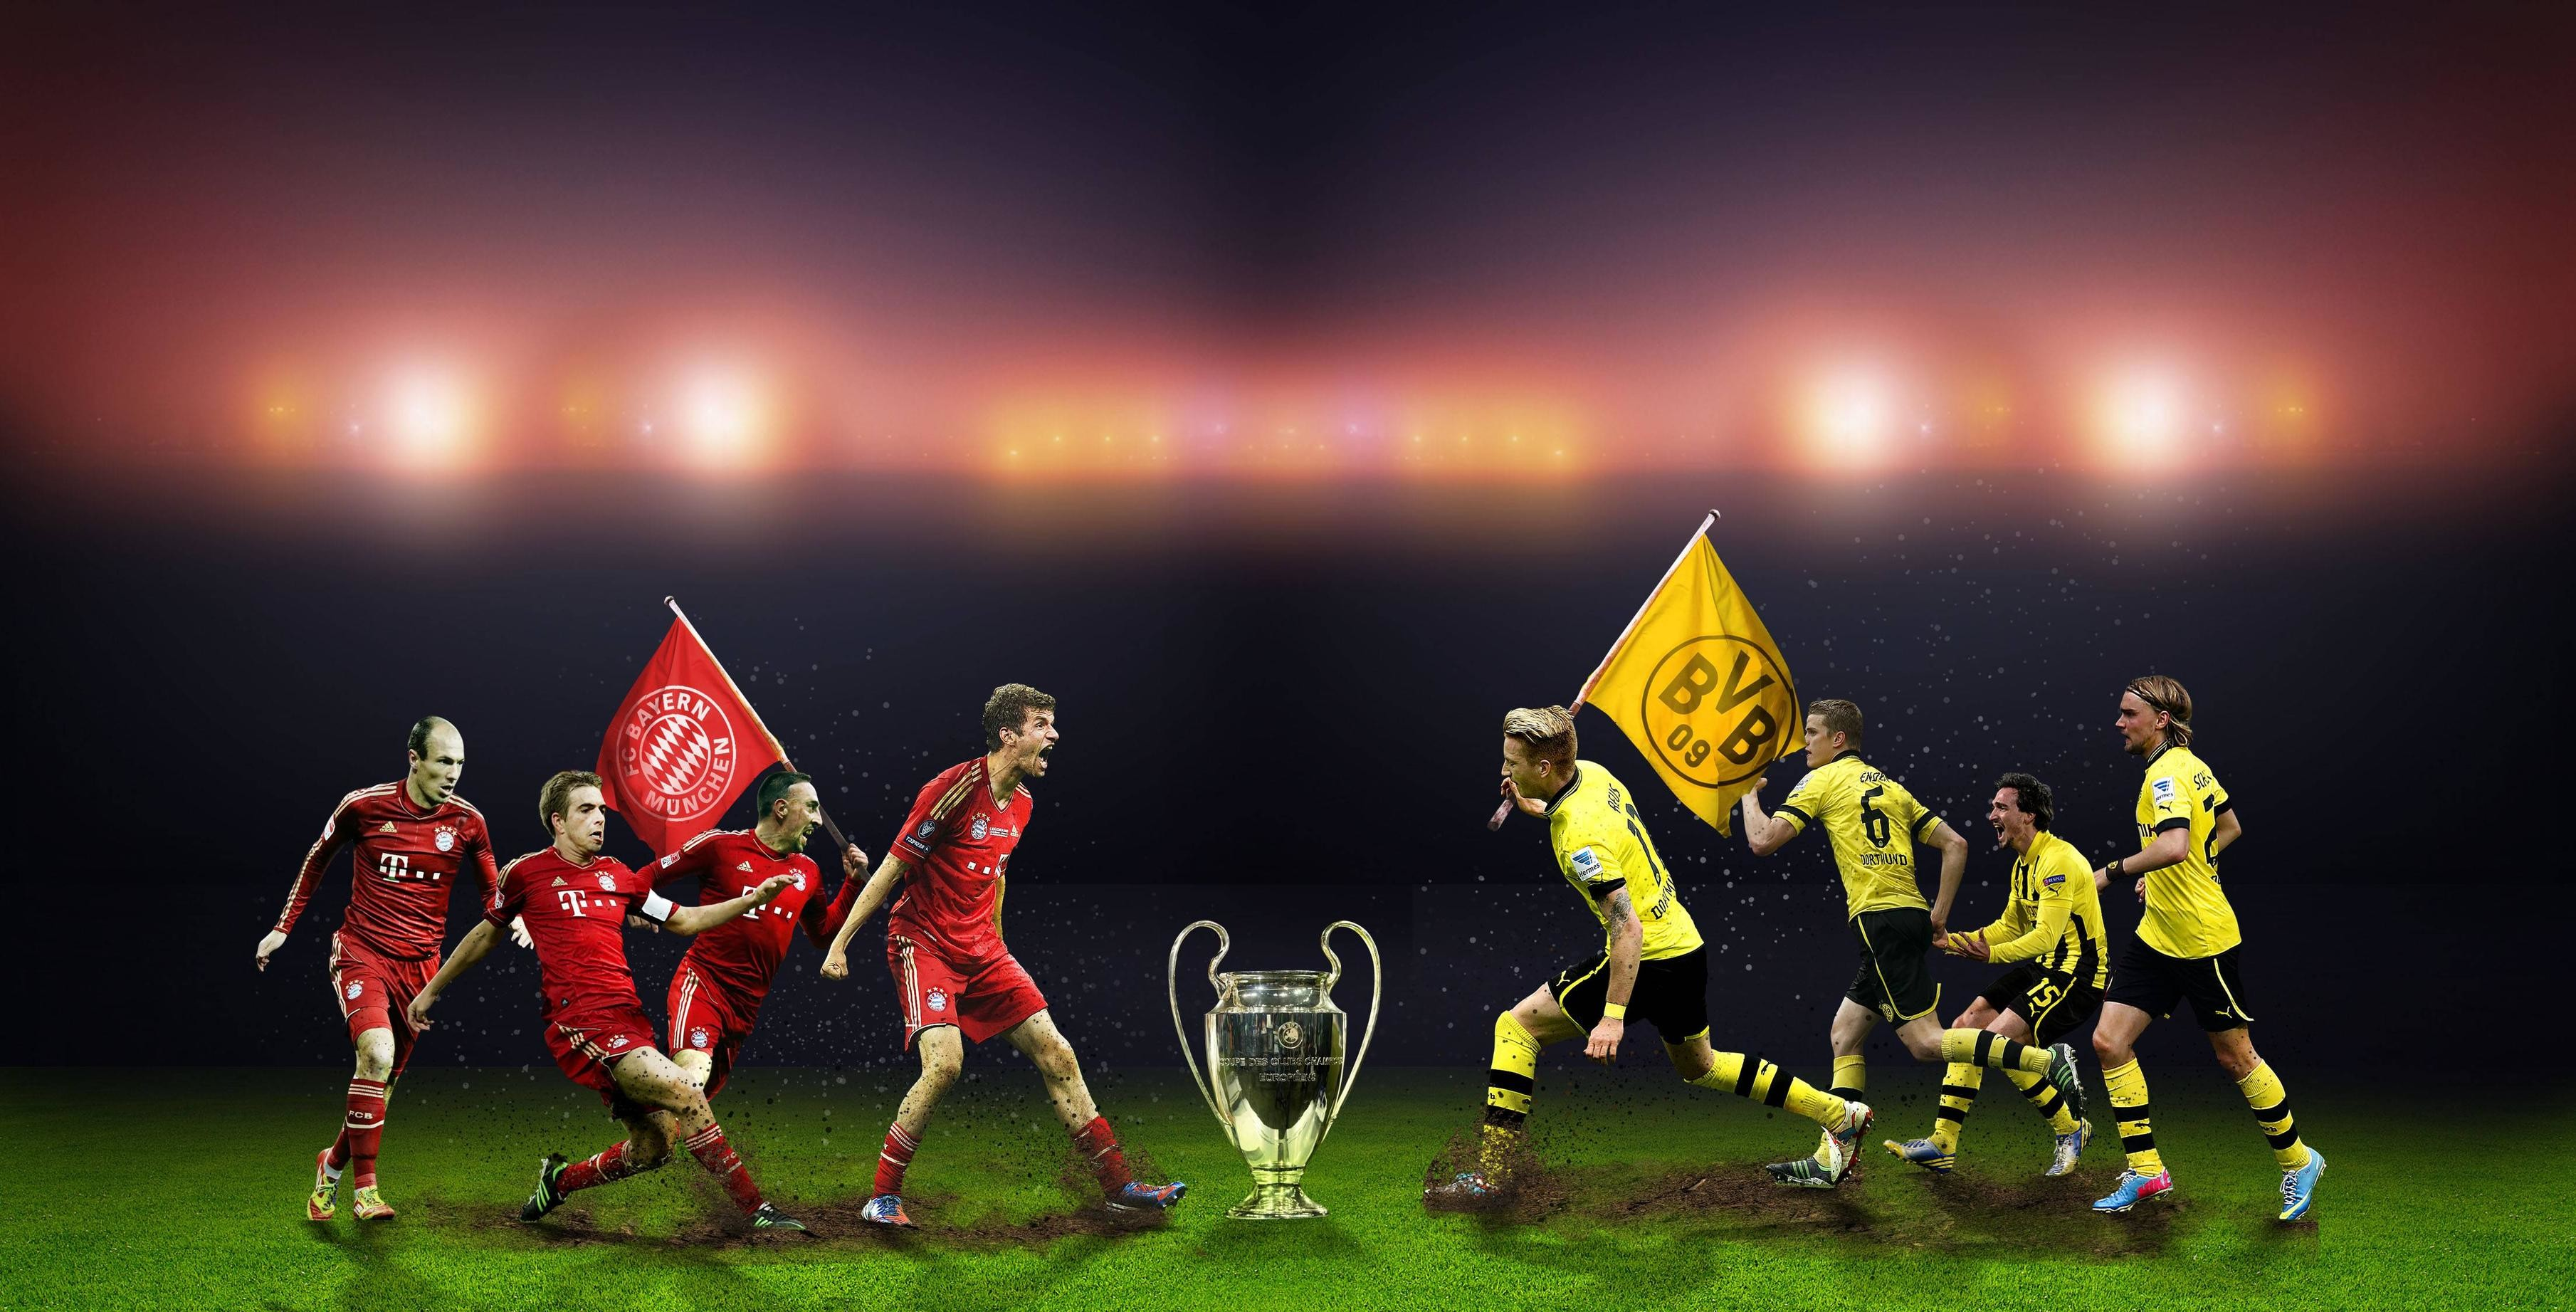 Res: 3619x1843, Champions League wallpaper I made ...